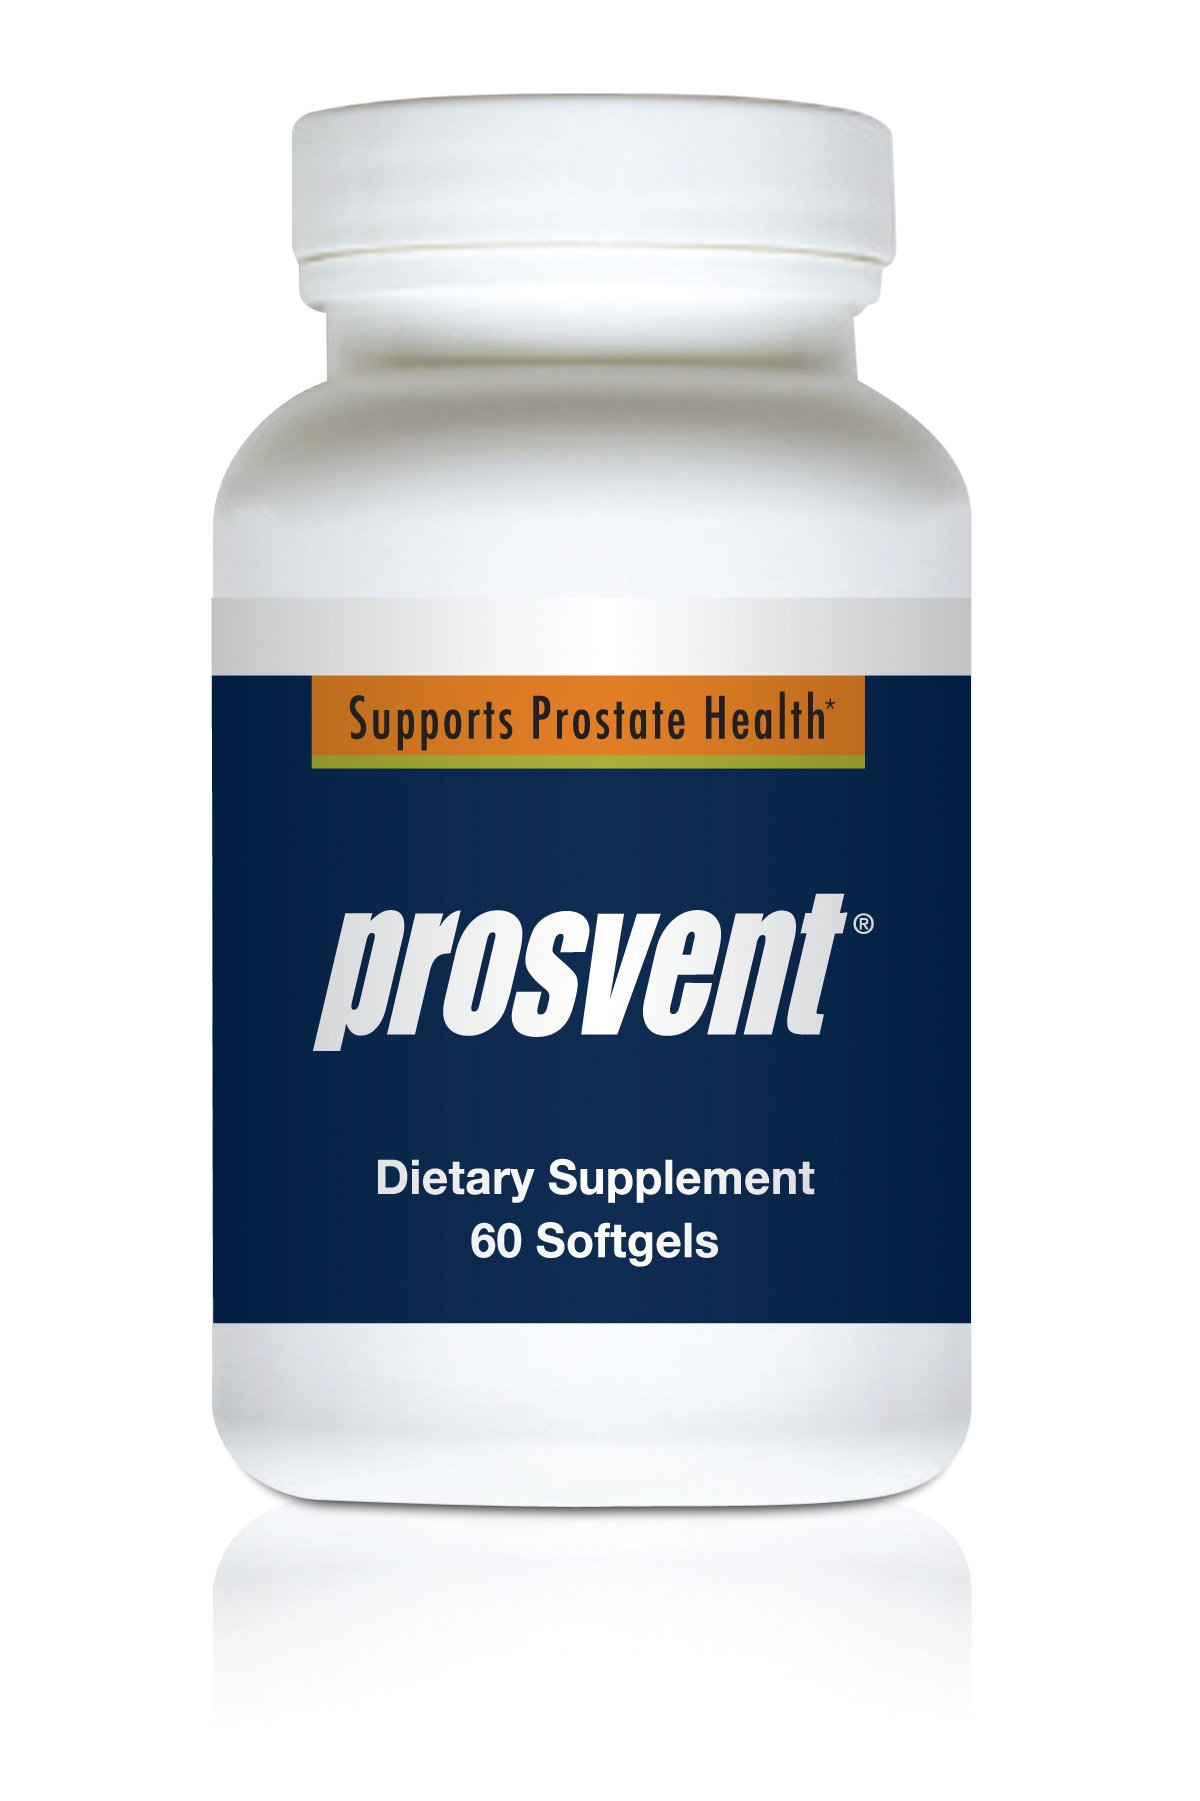 PROSVENT-Natural Prostate Health Supplement -Clinically Tested Ingredients- Reduce Urgency & Frequency. Improve Flow, Sleep, Health & Quality of Life. Over 180 Million DOSES Sold! –1 Month Supply